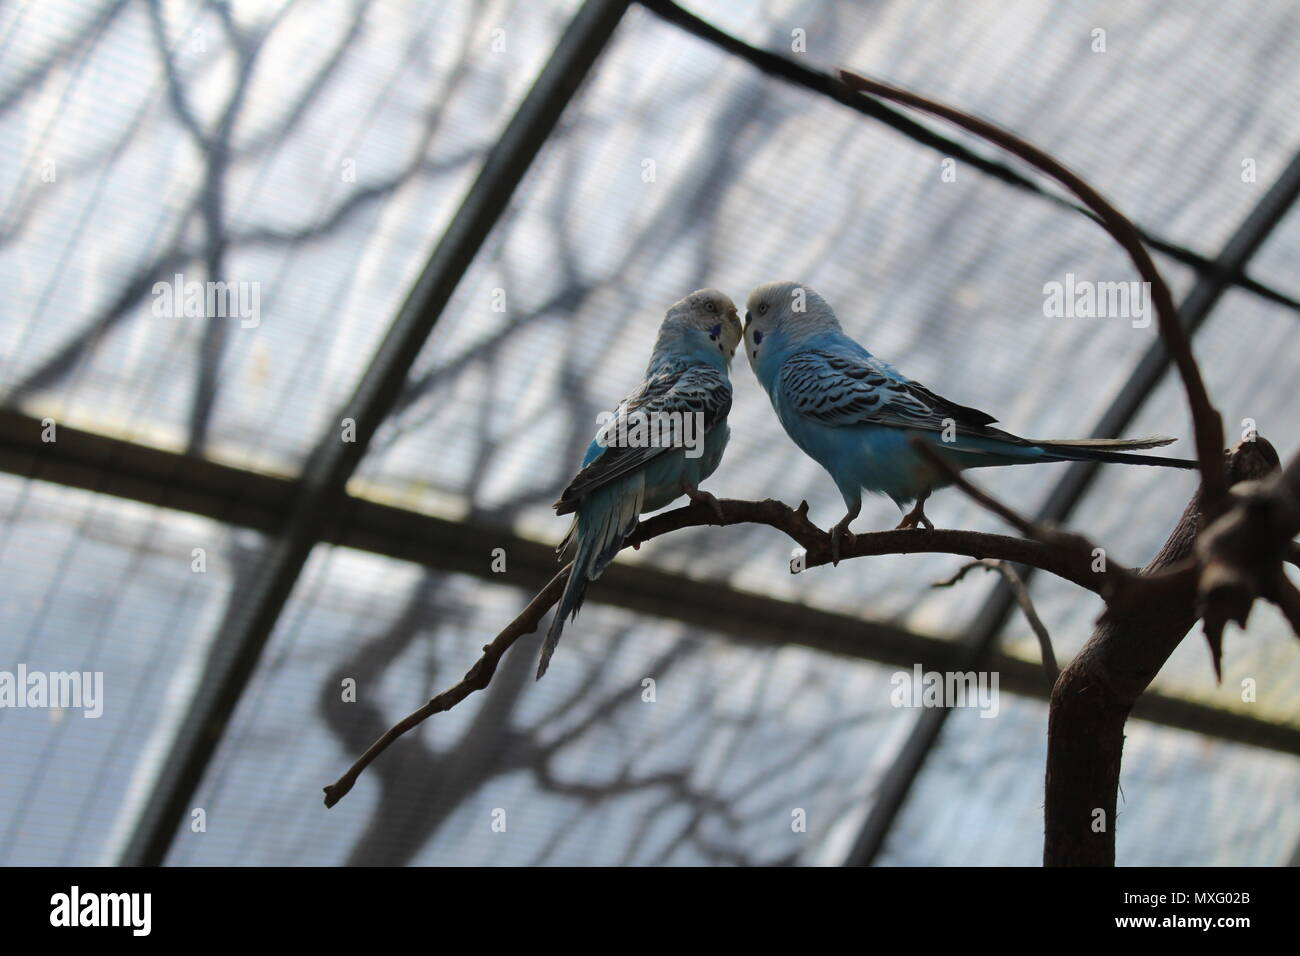 Two budgies, also known as common parakeets, displaying